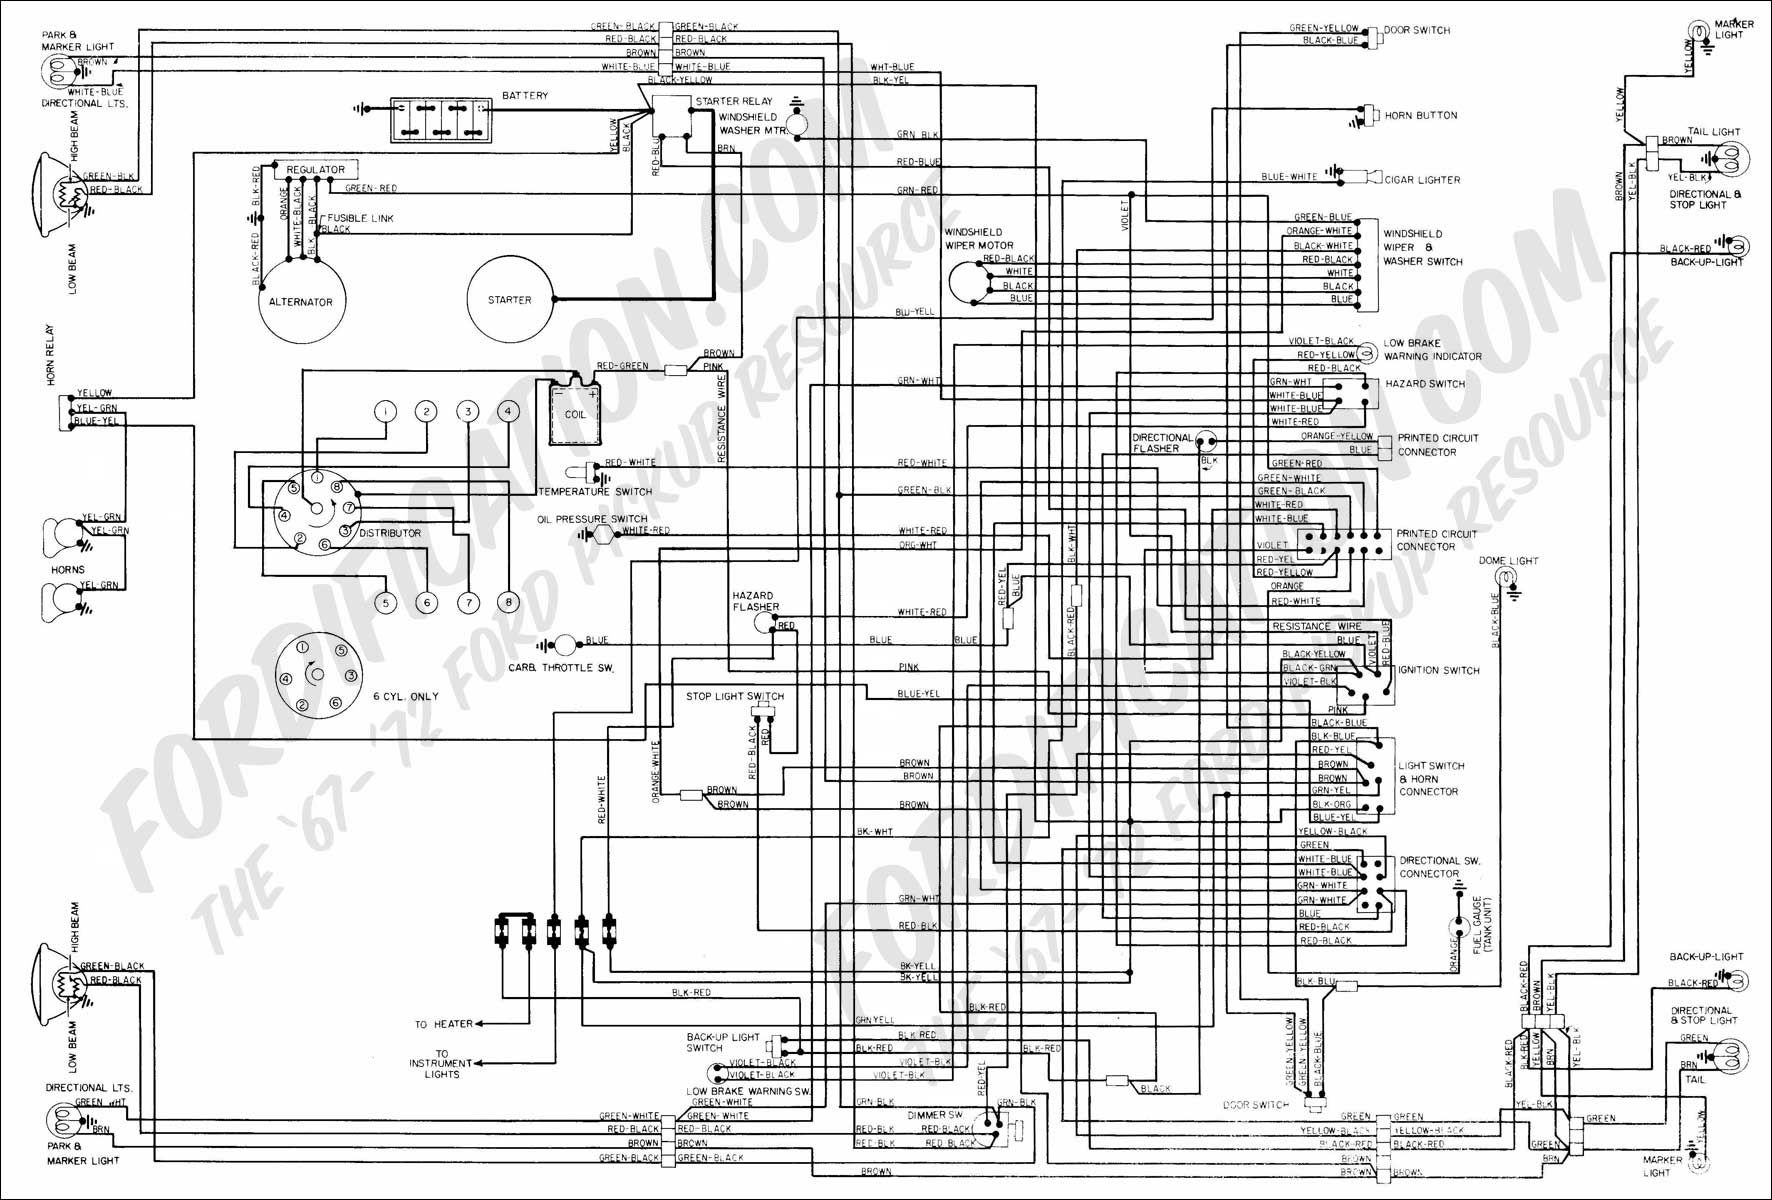 1998 jeep wrangler fuel pump wiring diagram 90 f150 about 2 months ago it wouldnt start eec fuel pump relay     90 f150 about 2 months ago it wouldnt